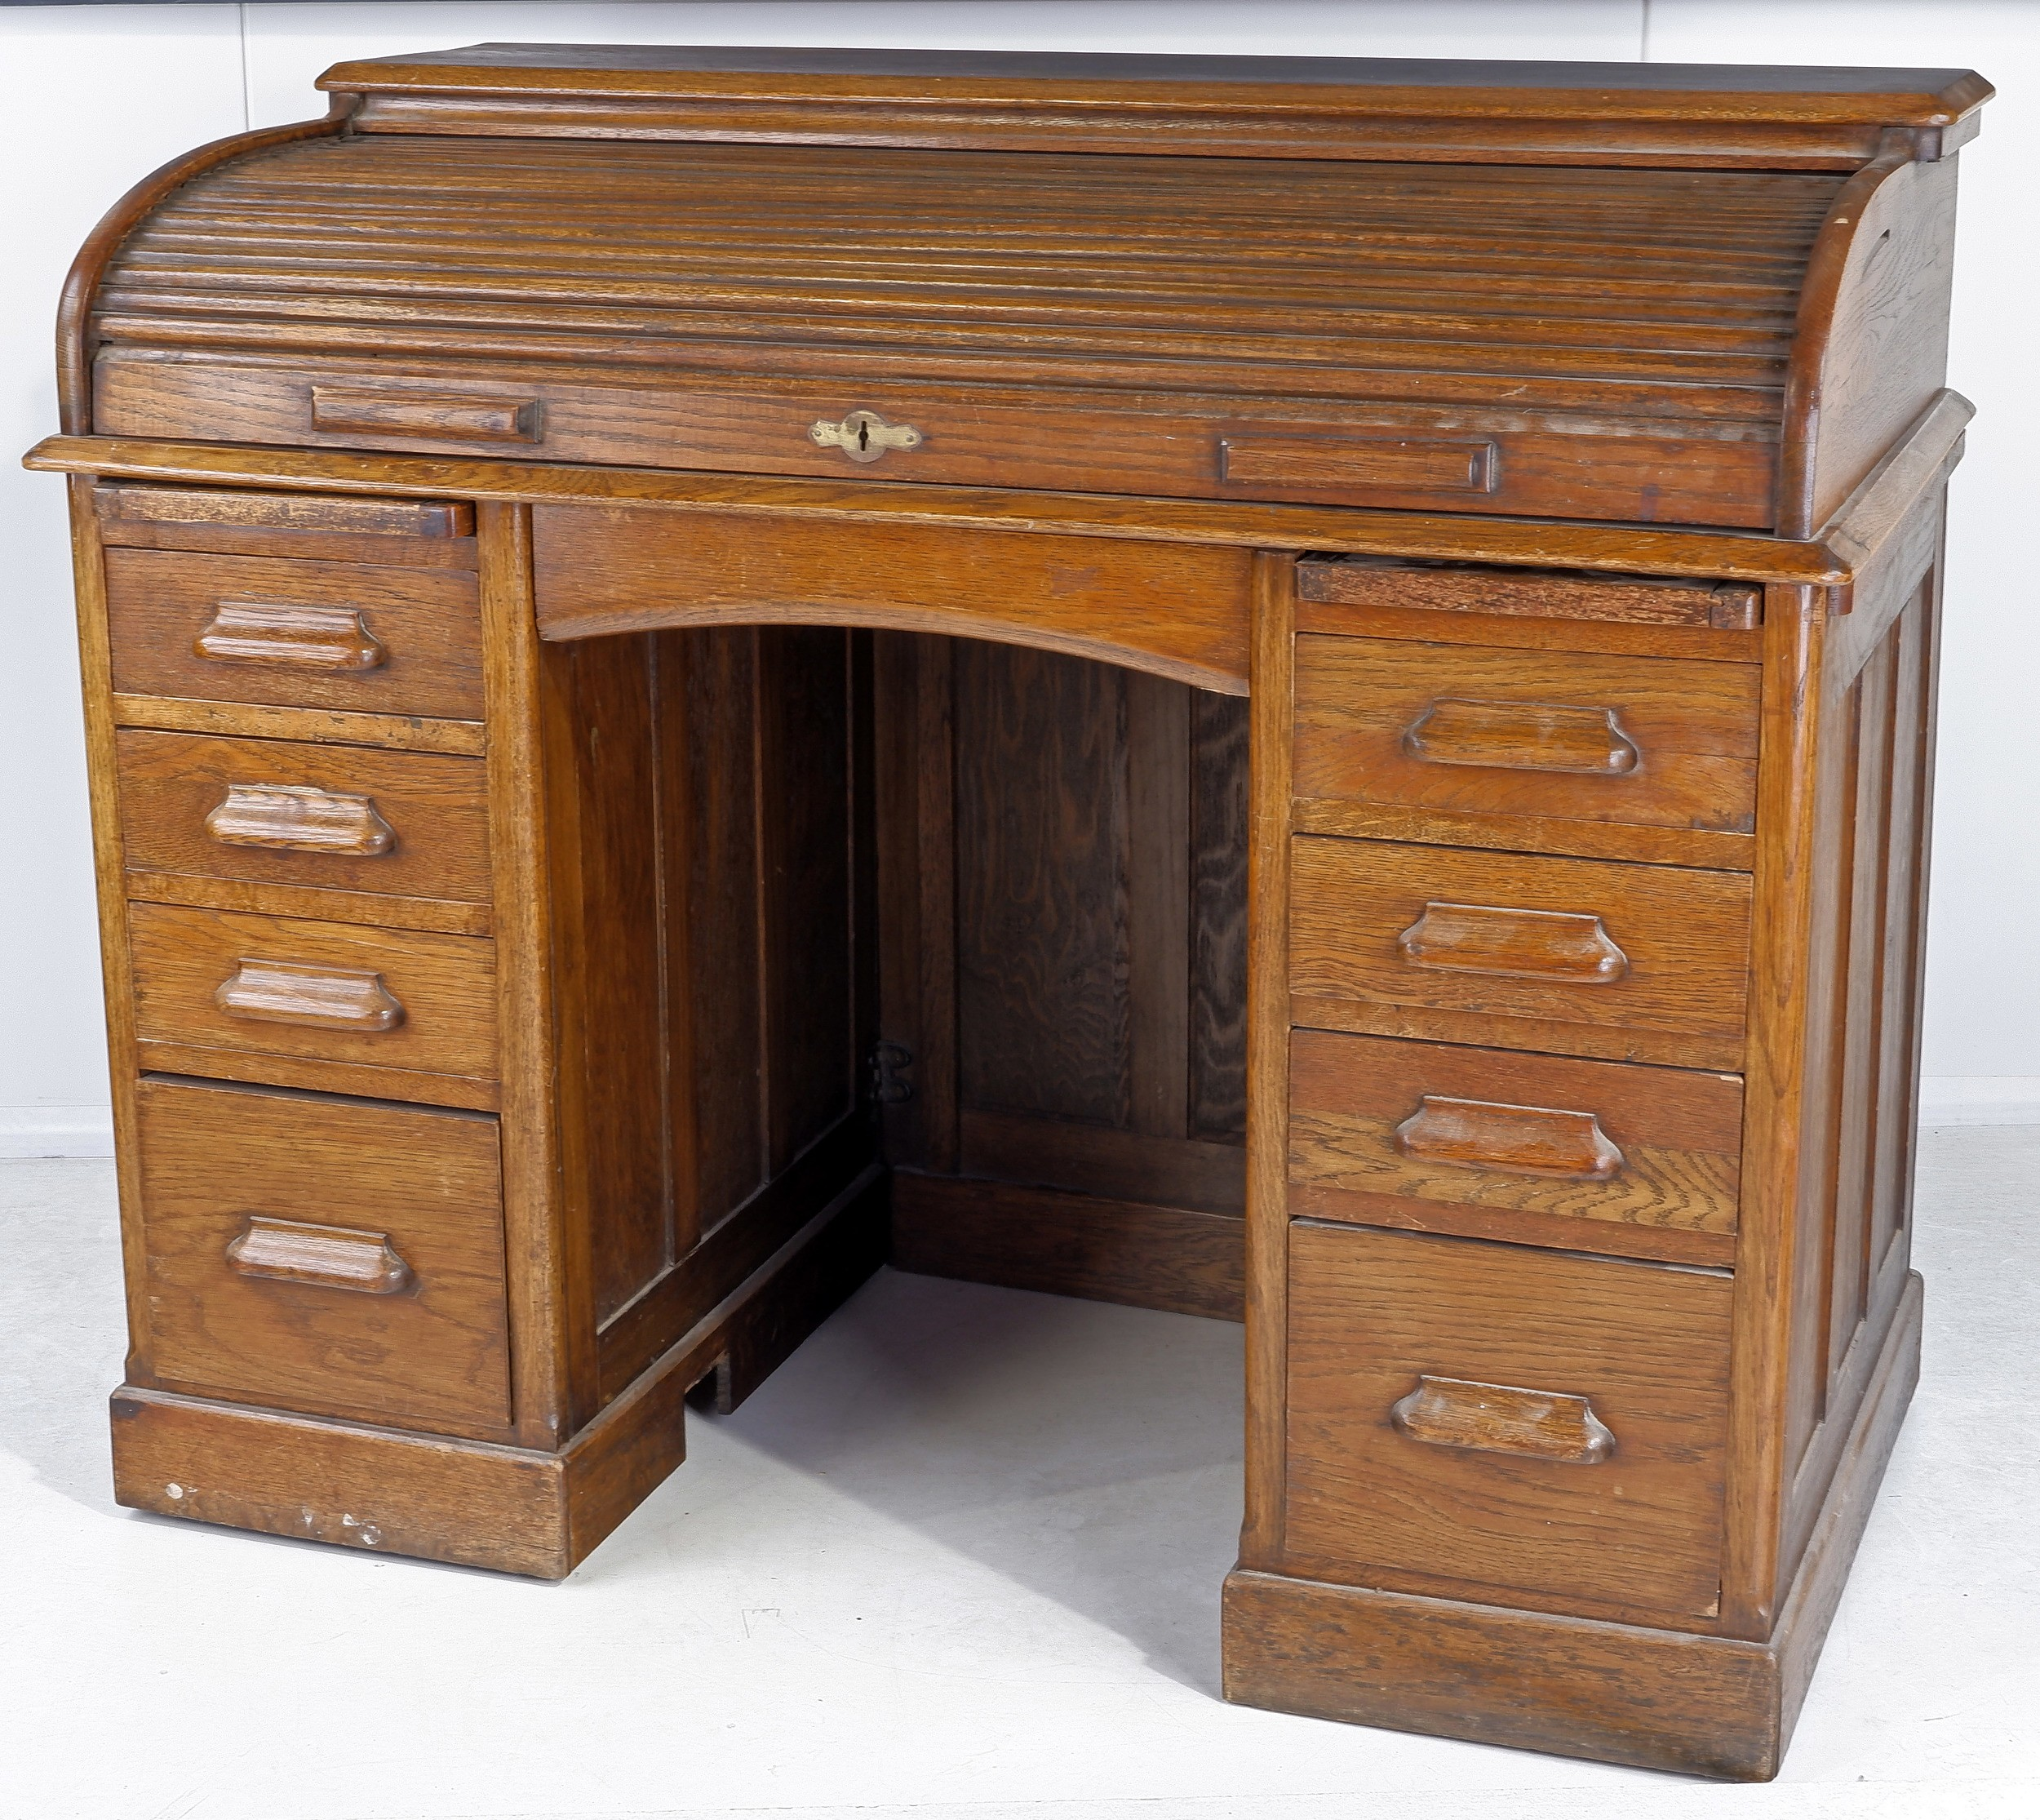 'WITHDRAWN Oak Double Pedestal Roll Top Desk Early 20th Century'